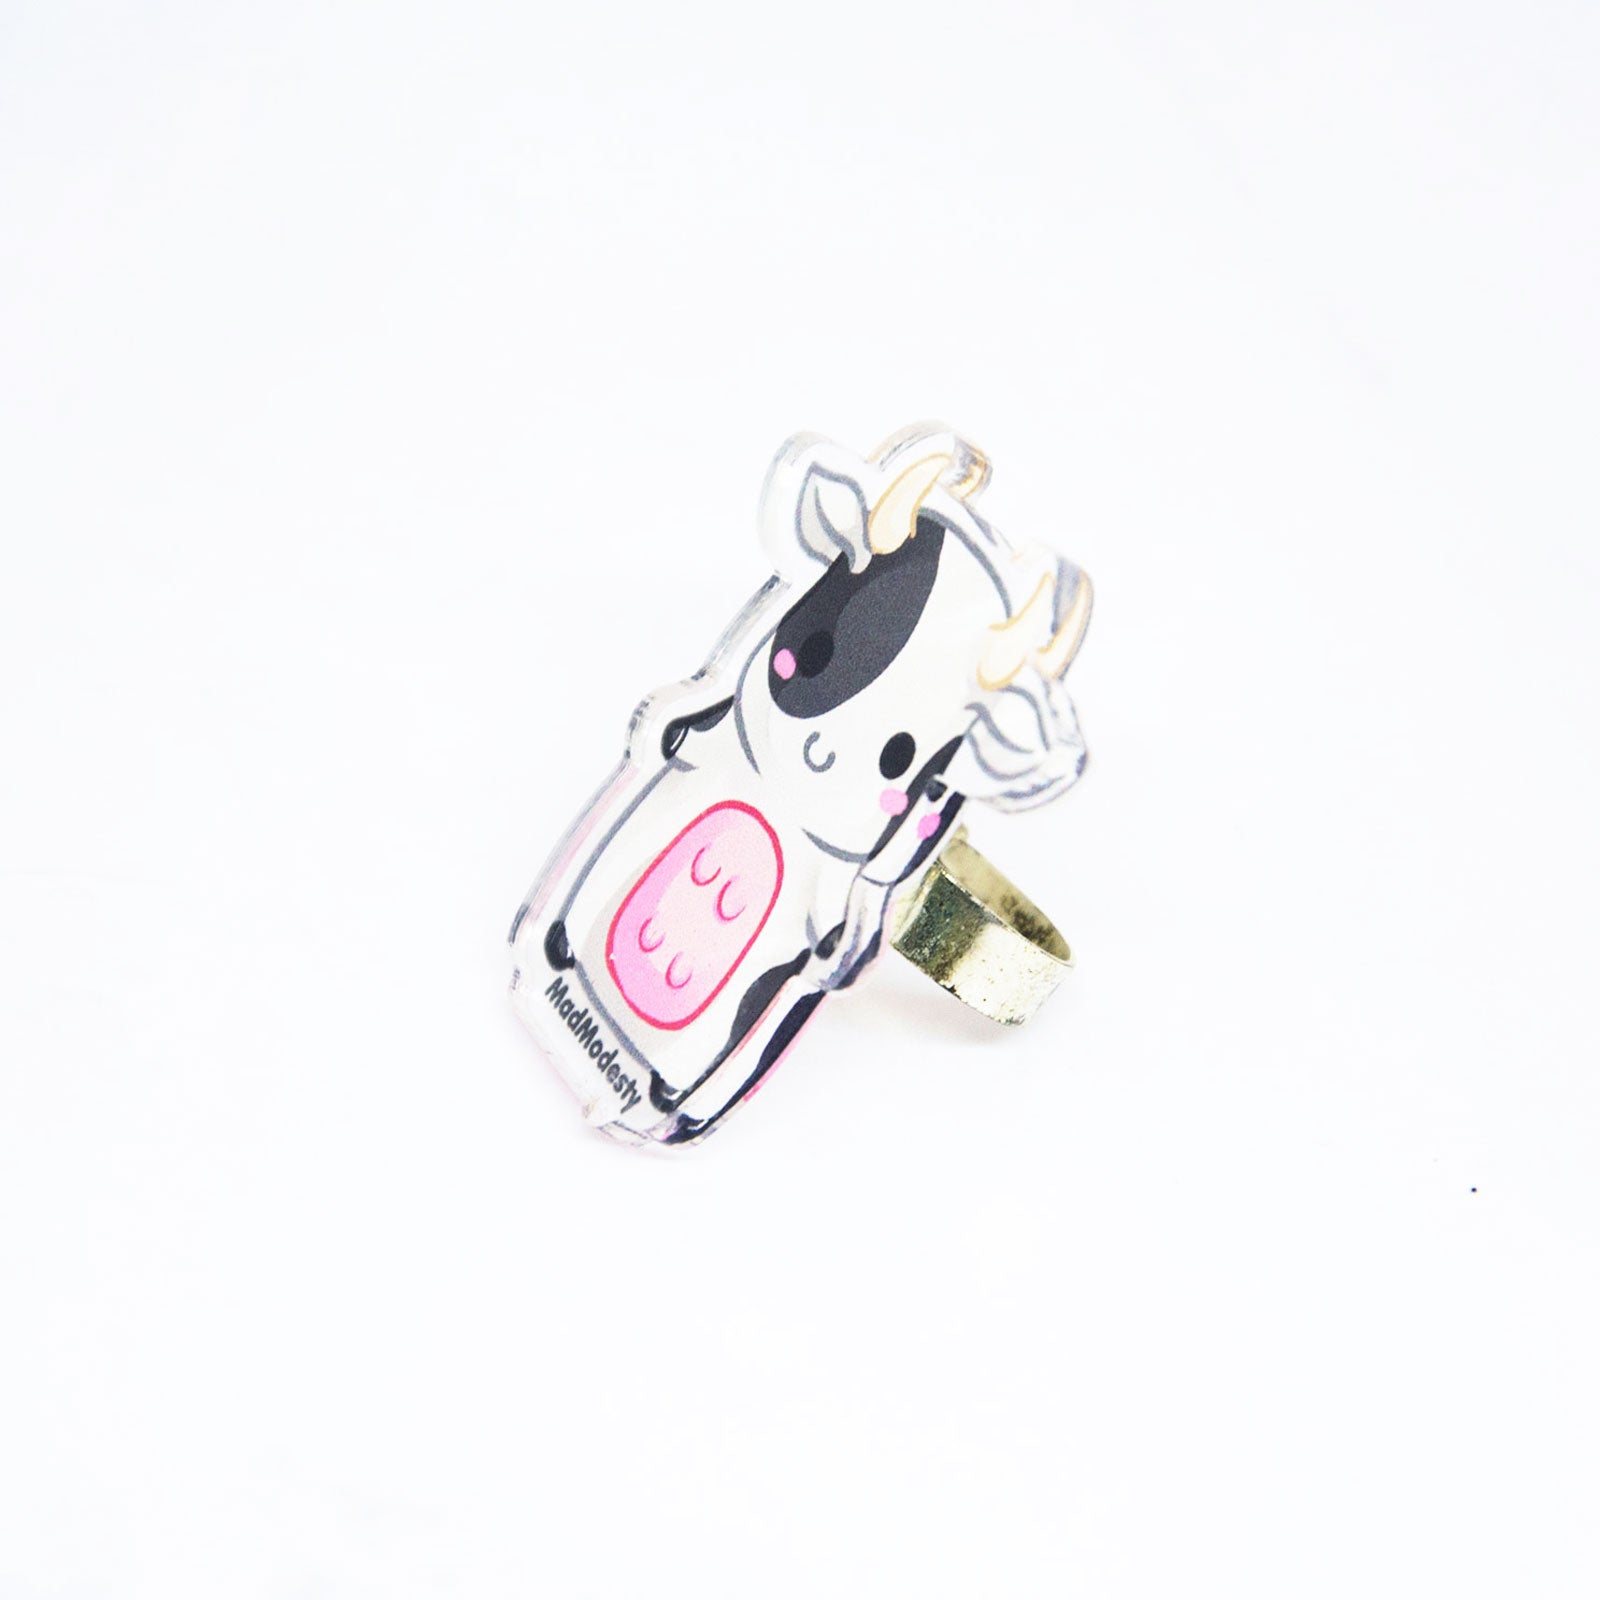 Acrylic charm baby farm anime cow ring - MadModesty